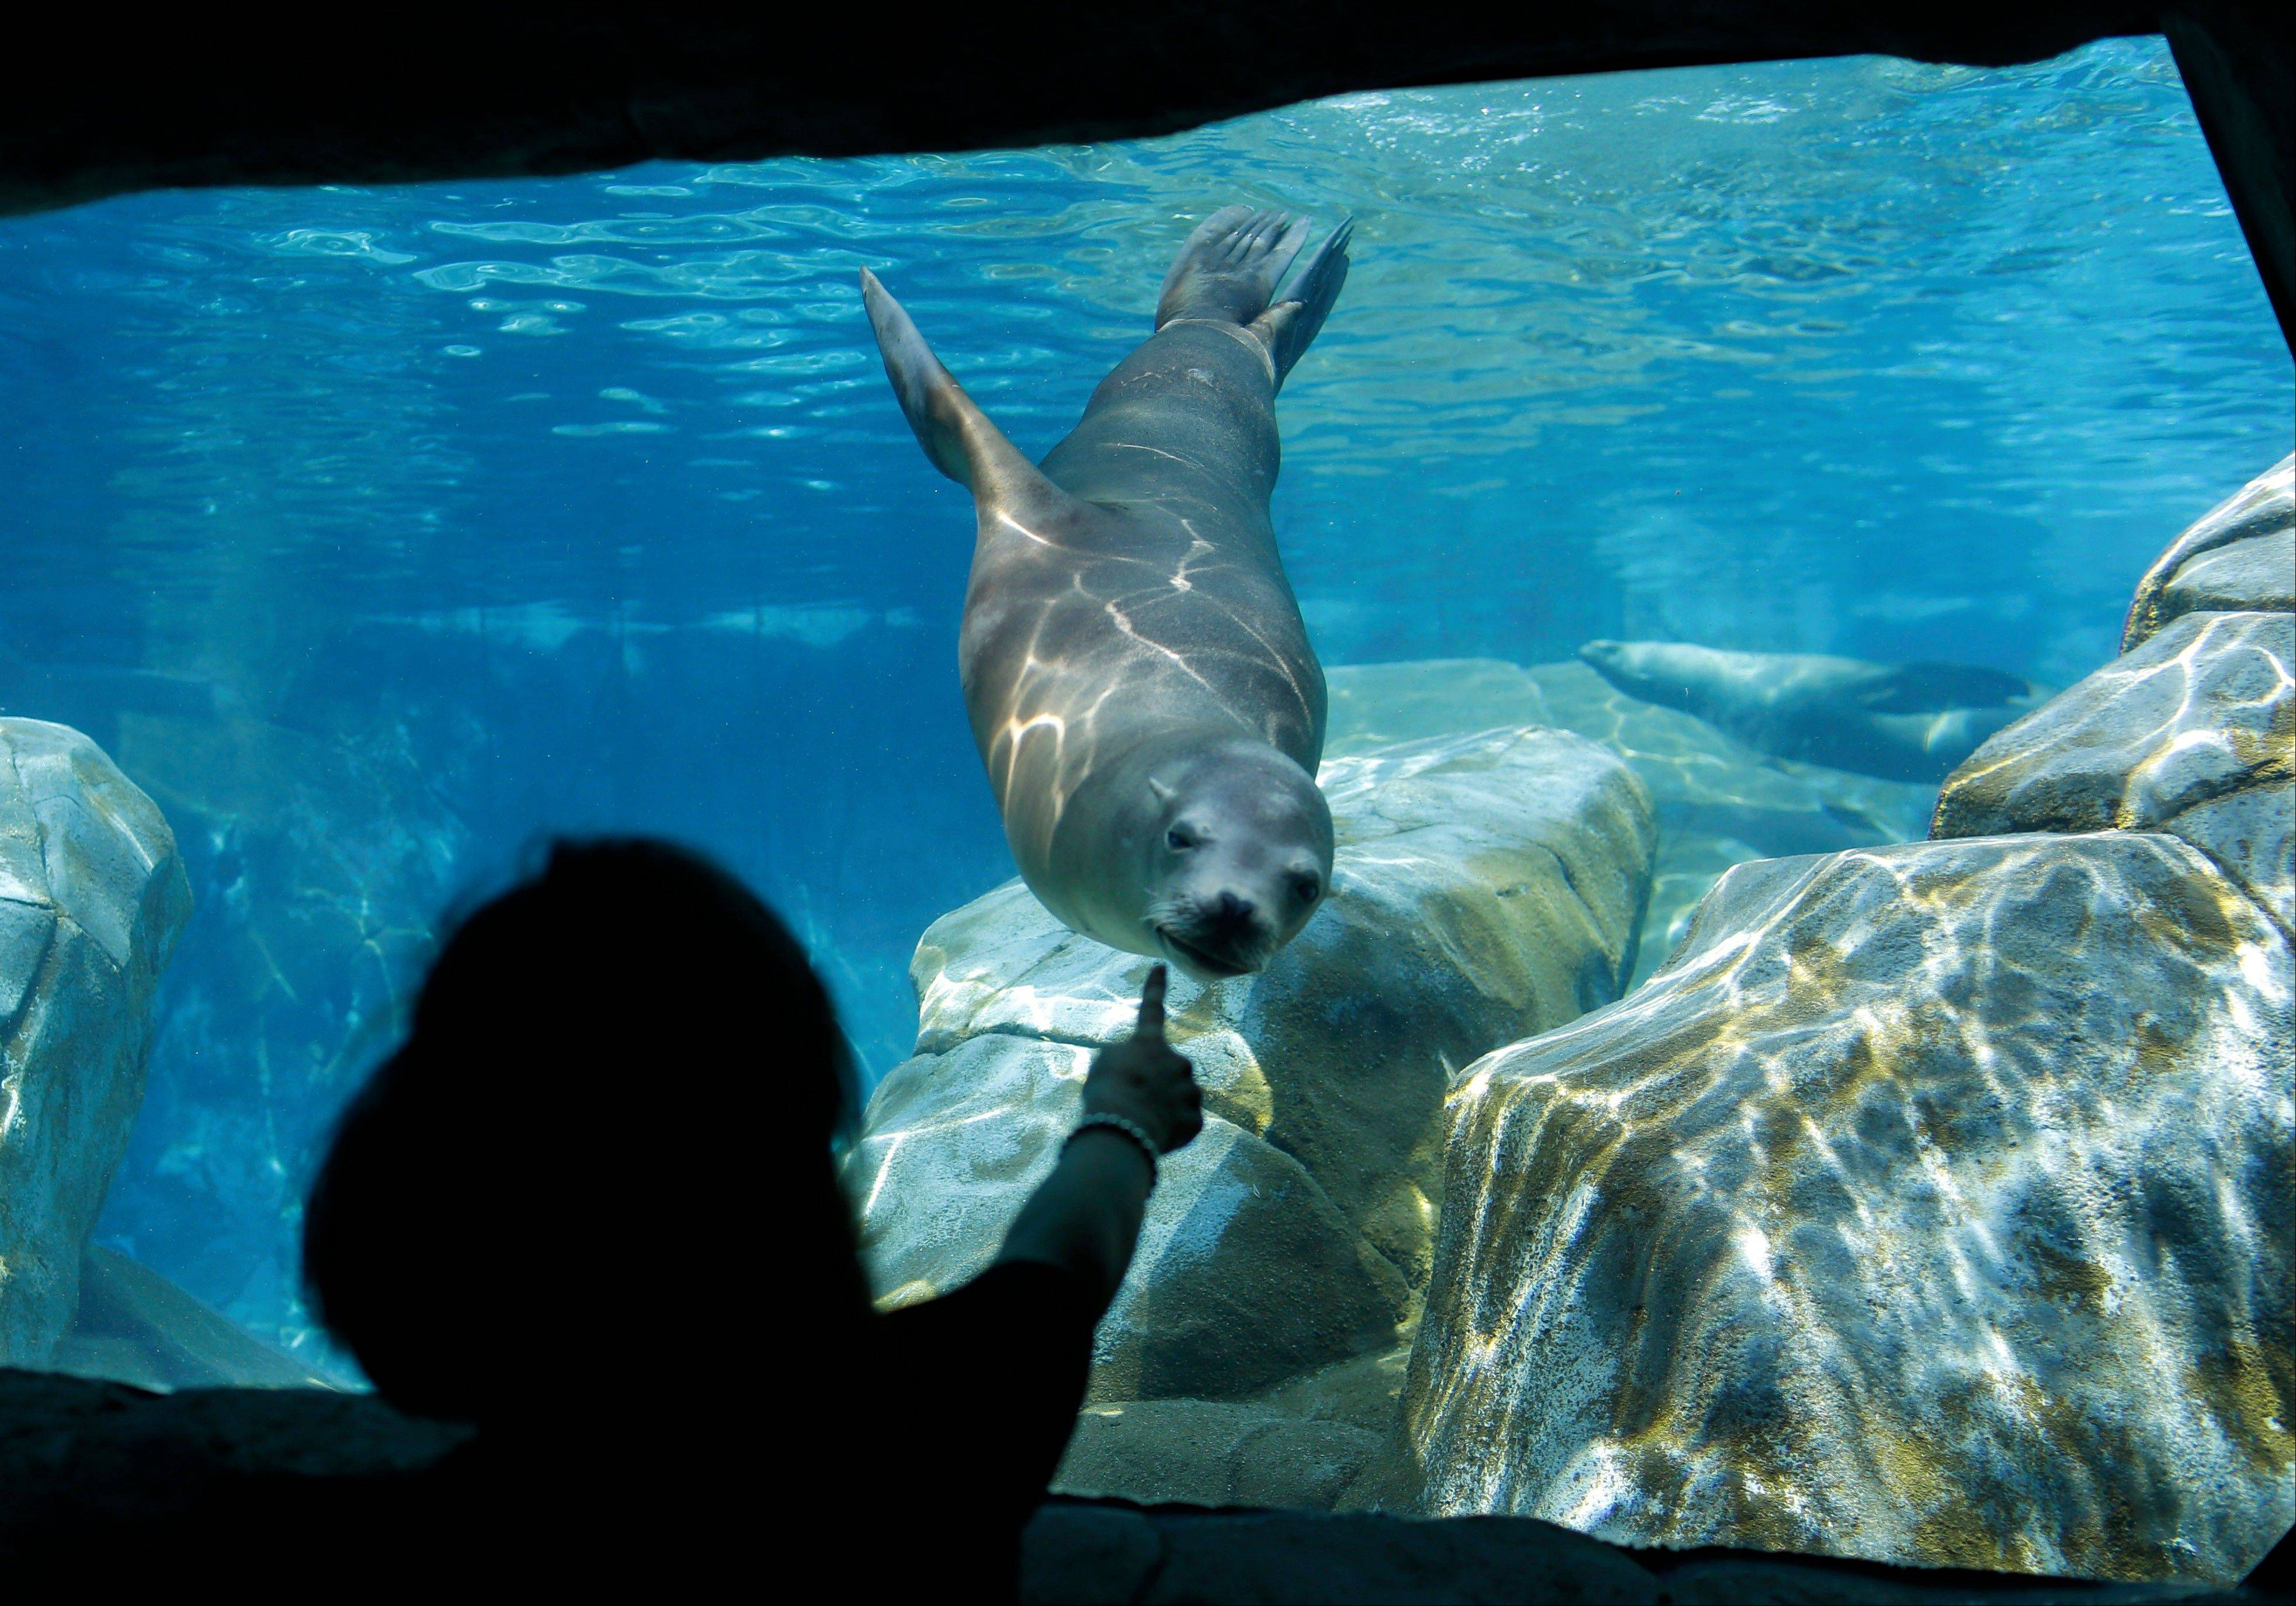 A visitor interacts with a sea lion at the St. Louis Zoo, which is one of the few in the nation with no admission fee.